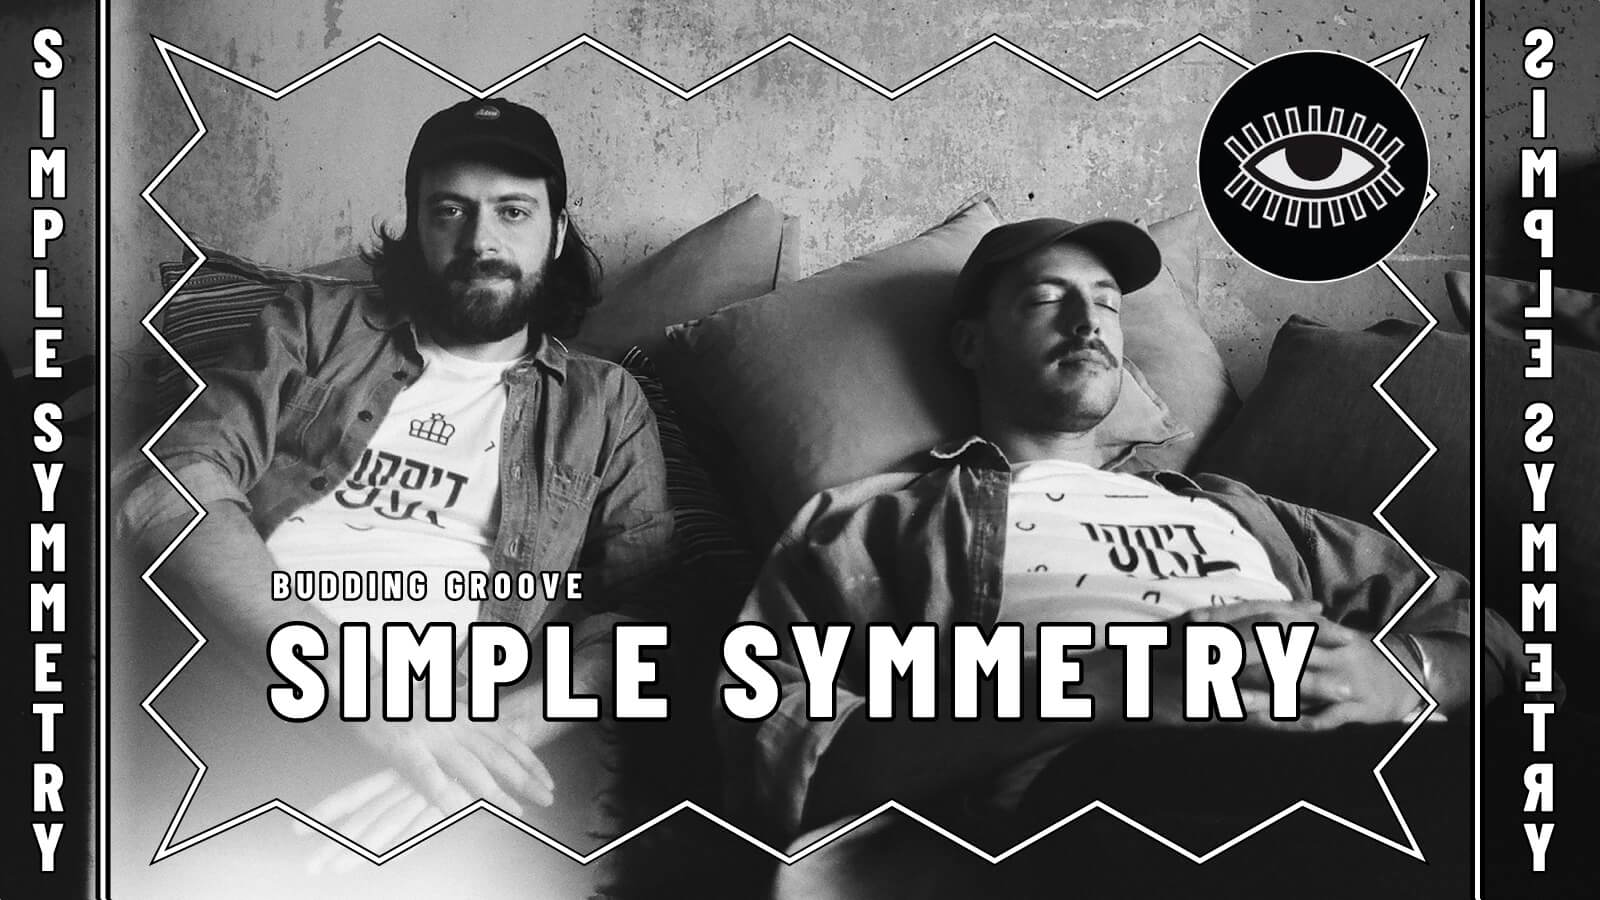 Budding Groove: Simple Symmetry